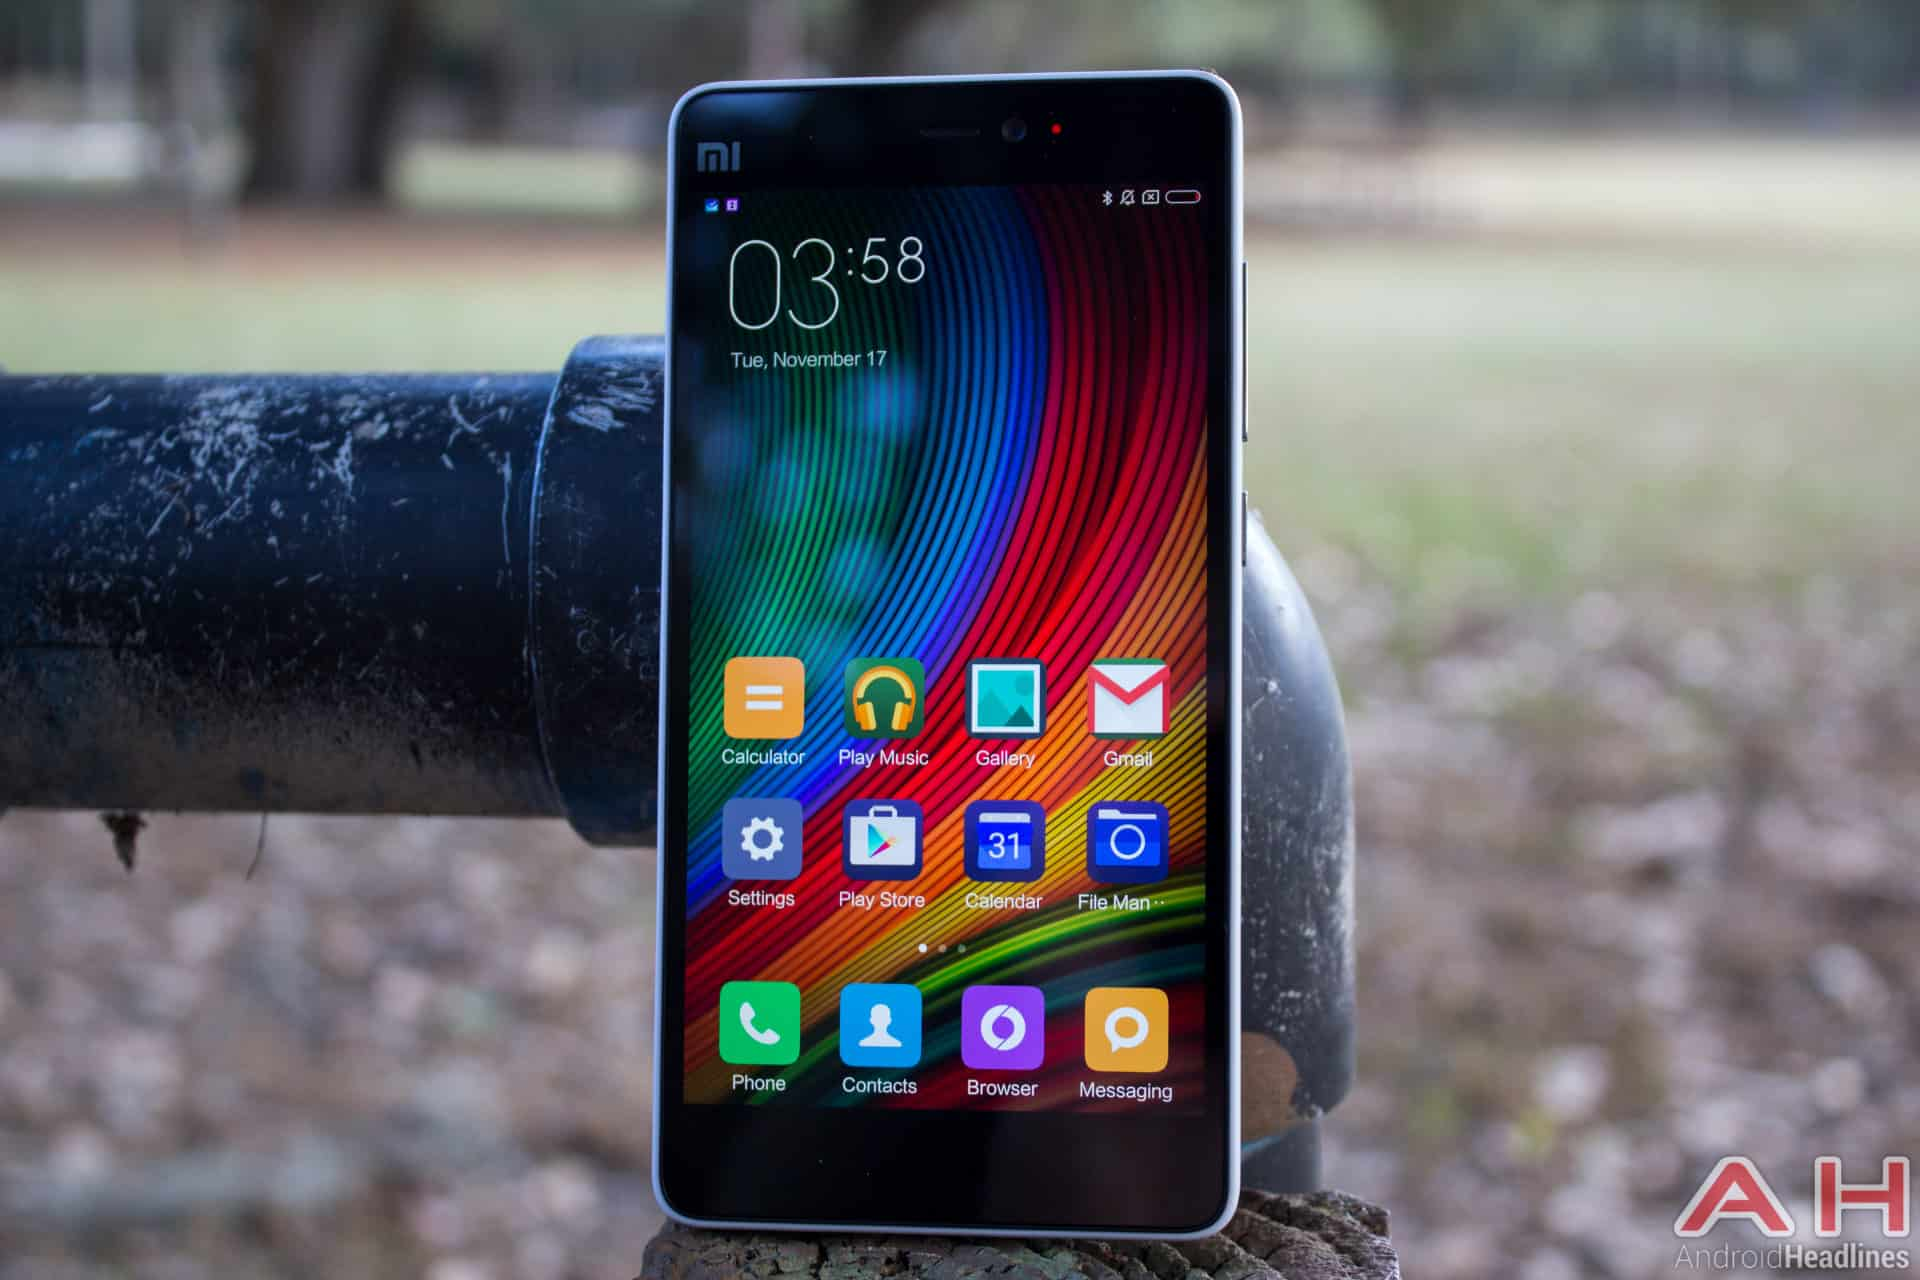 Xiaomi-Mi-4C-AH-display